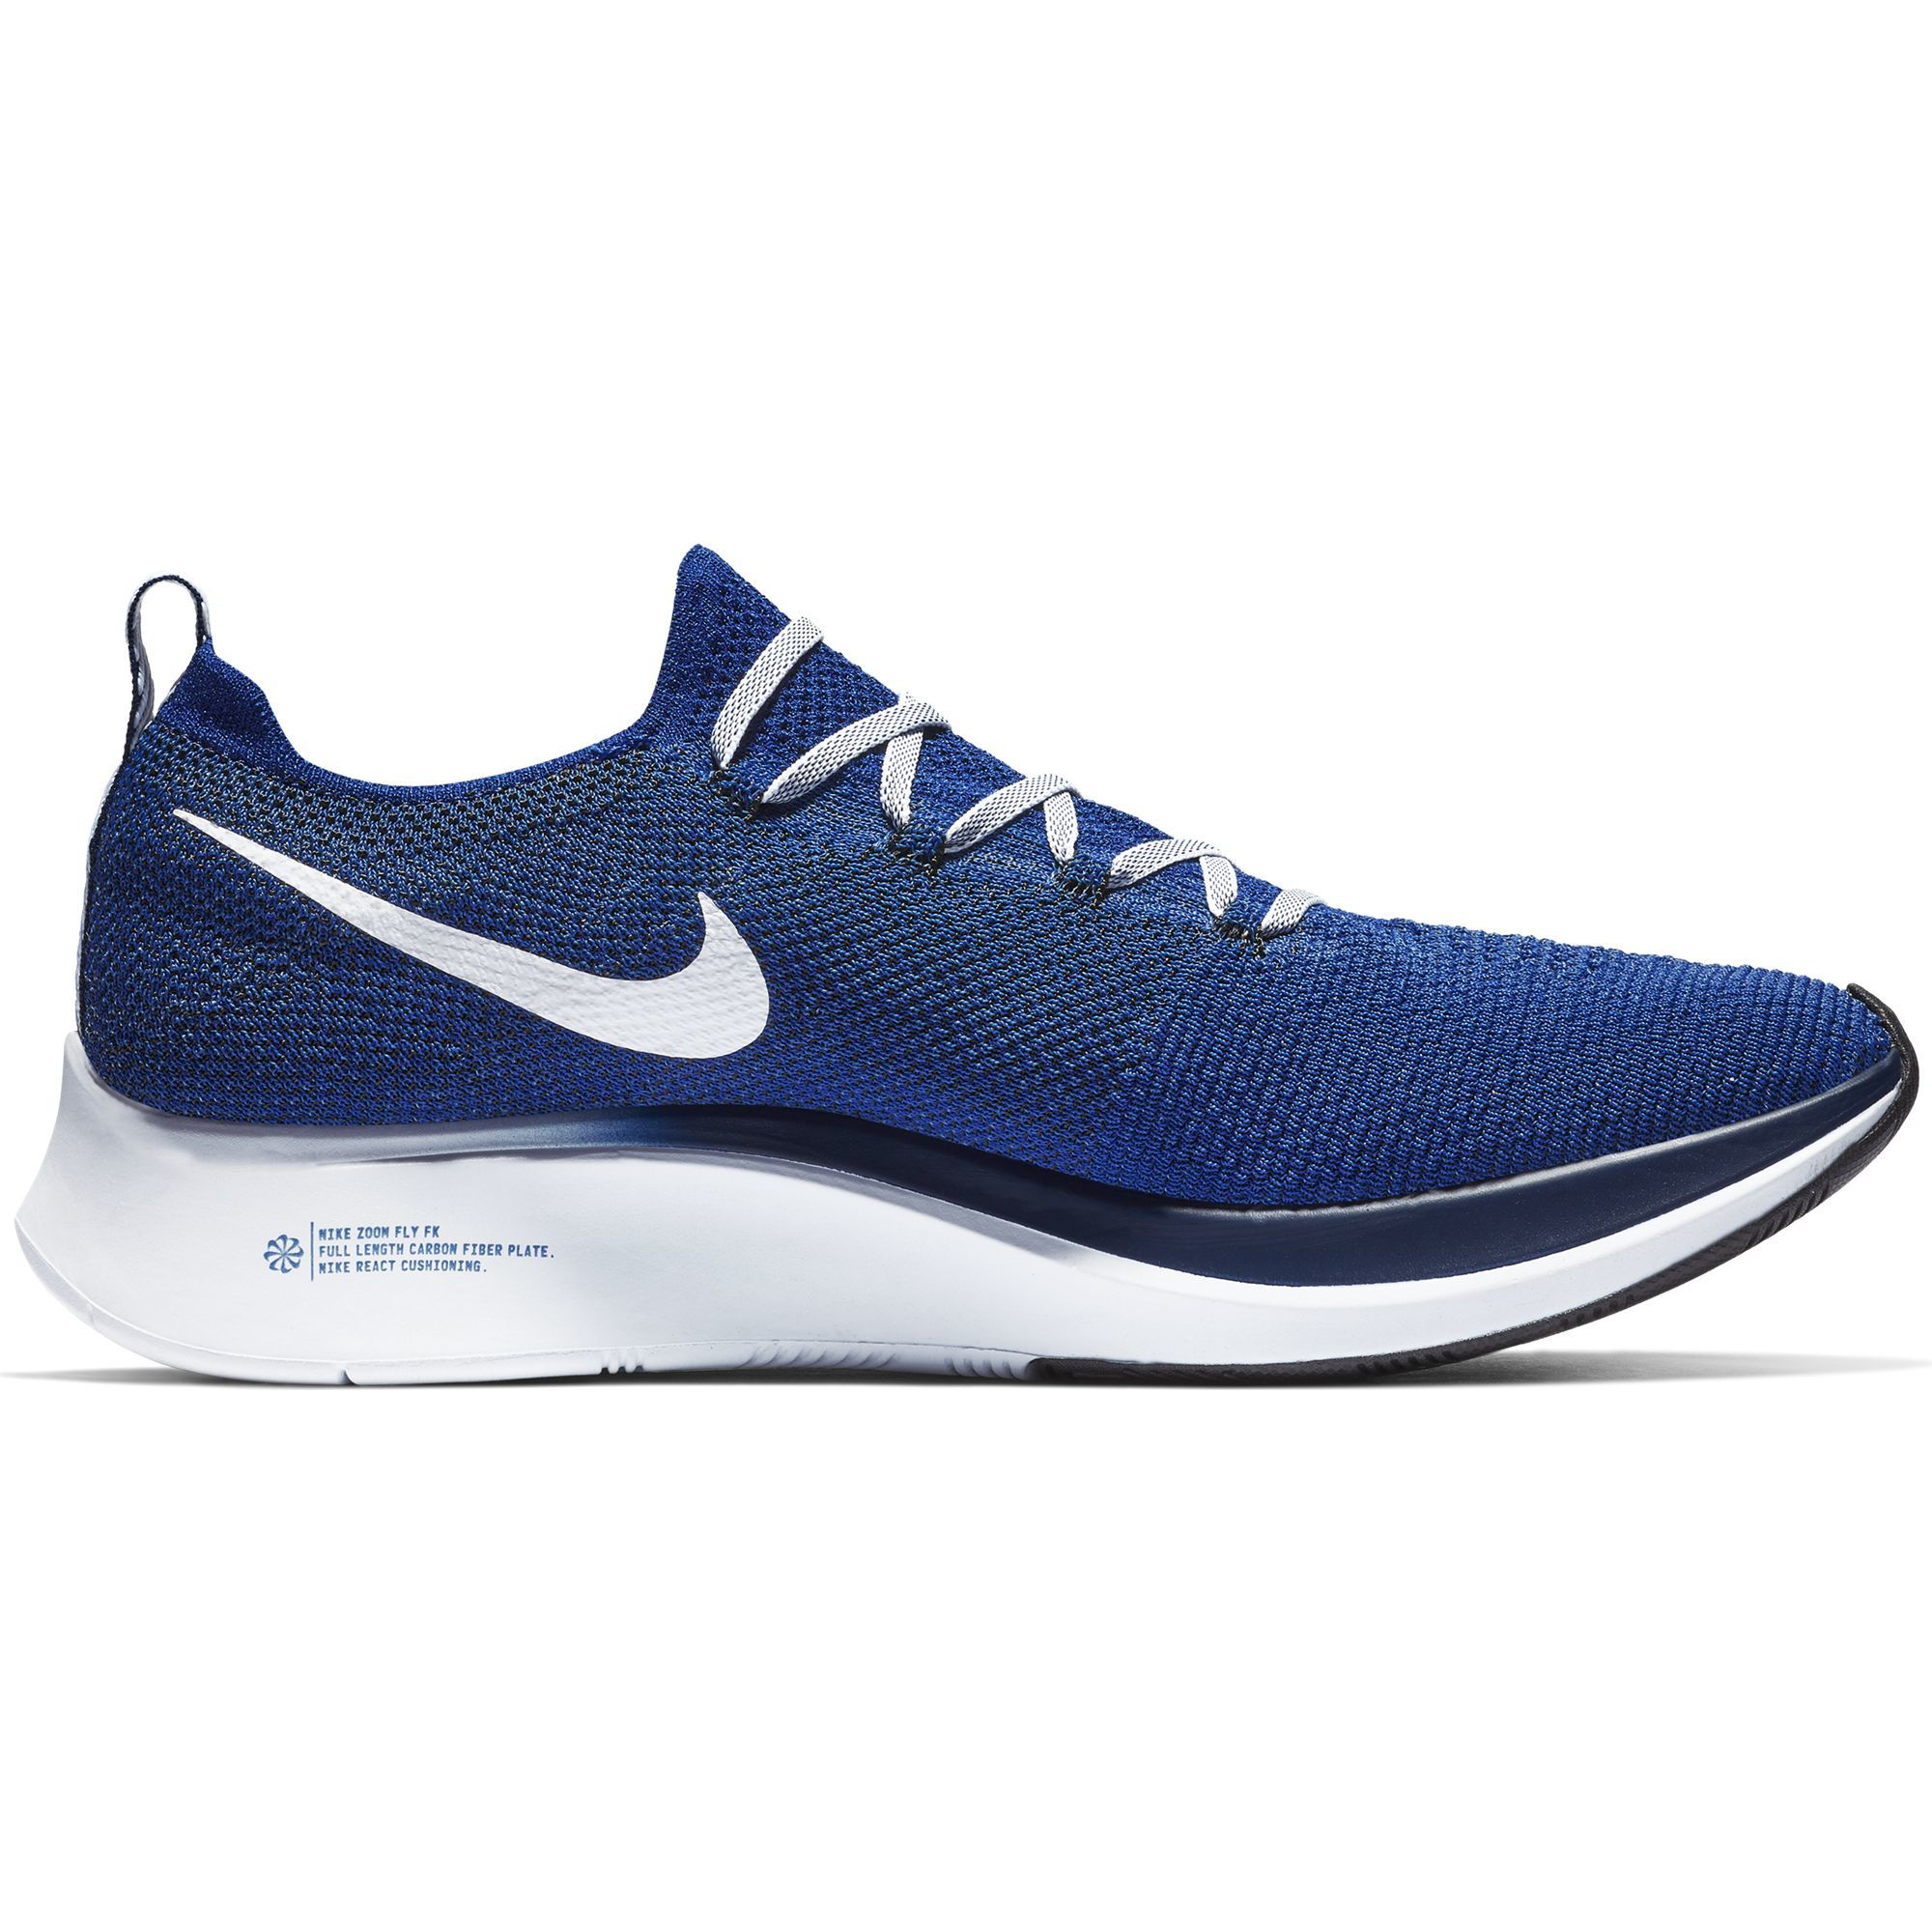 Nike Zoom Fly Flyknit in Blau Weiß